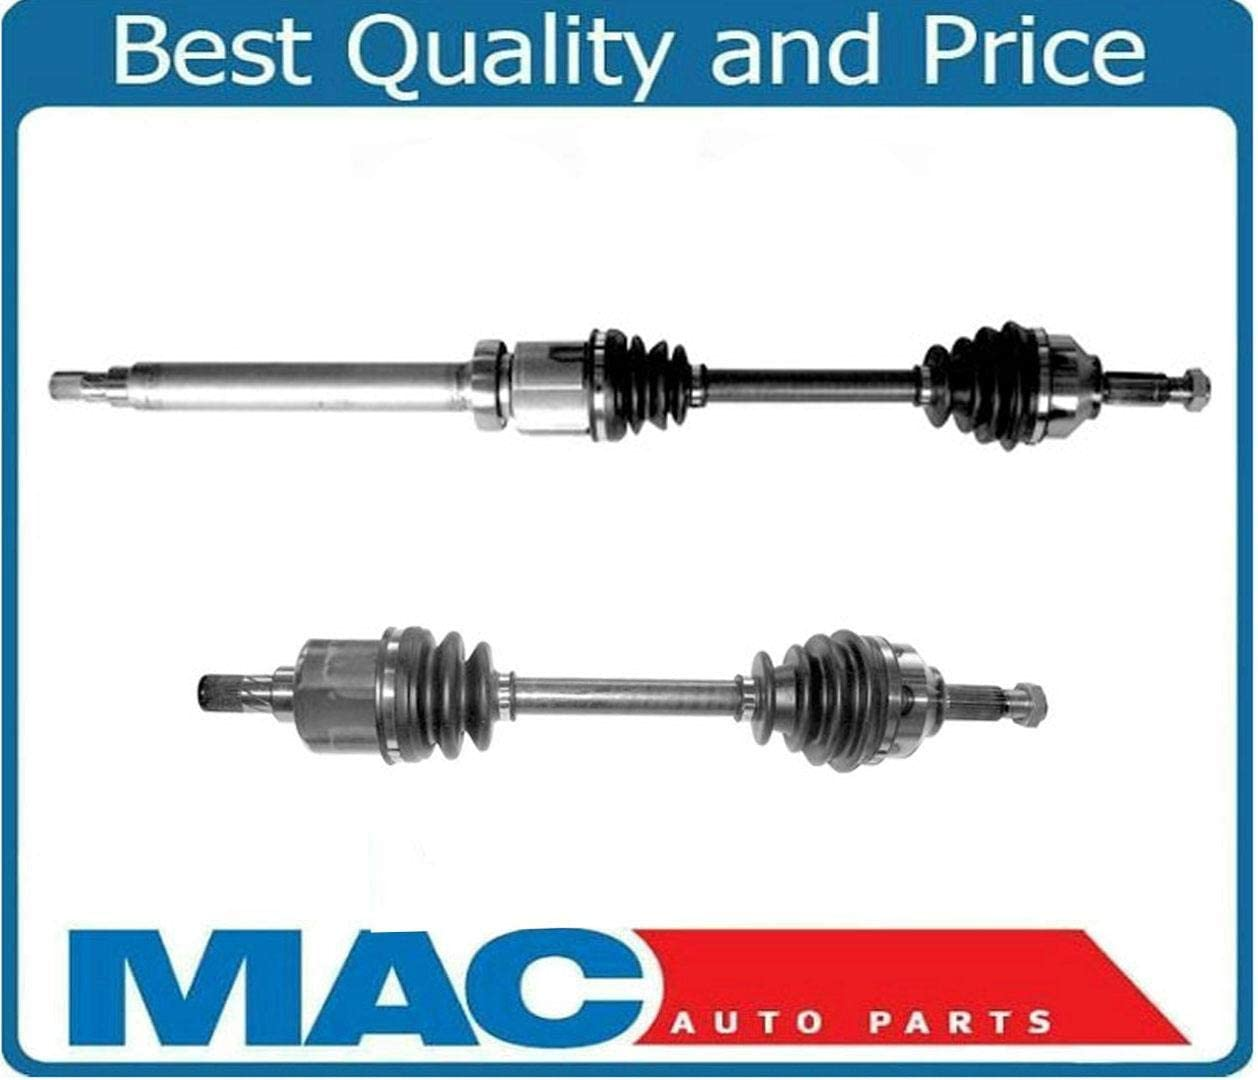 Bodeman Front RIGHT//Passenger Side CV Axle Drive Shaft Assembly Fits 2002 2003 2004 Ford Focus SVT 6 Speed MANUAL Transmission